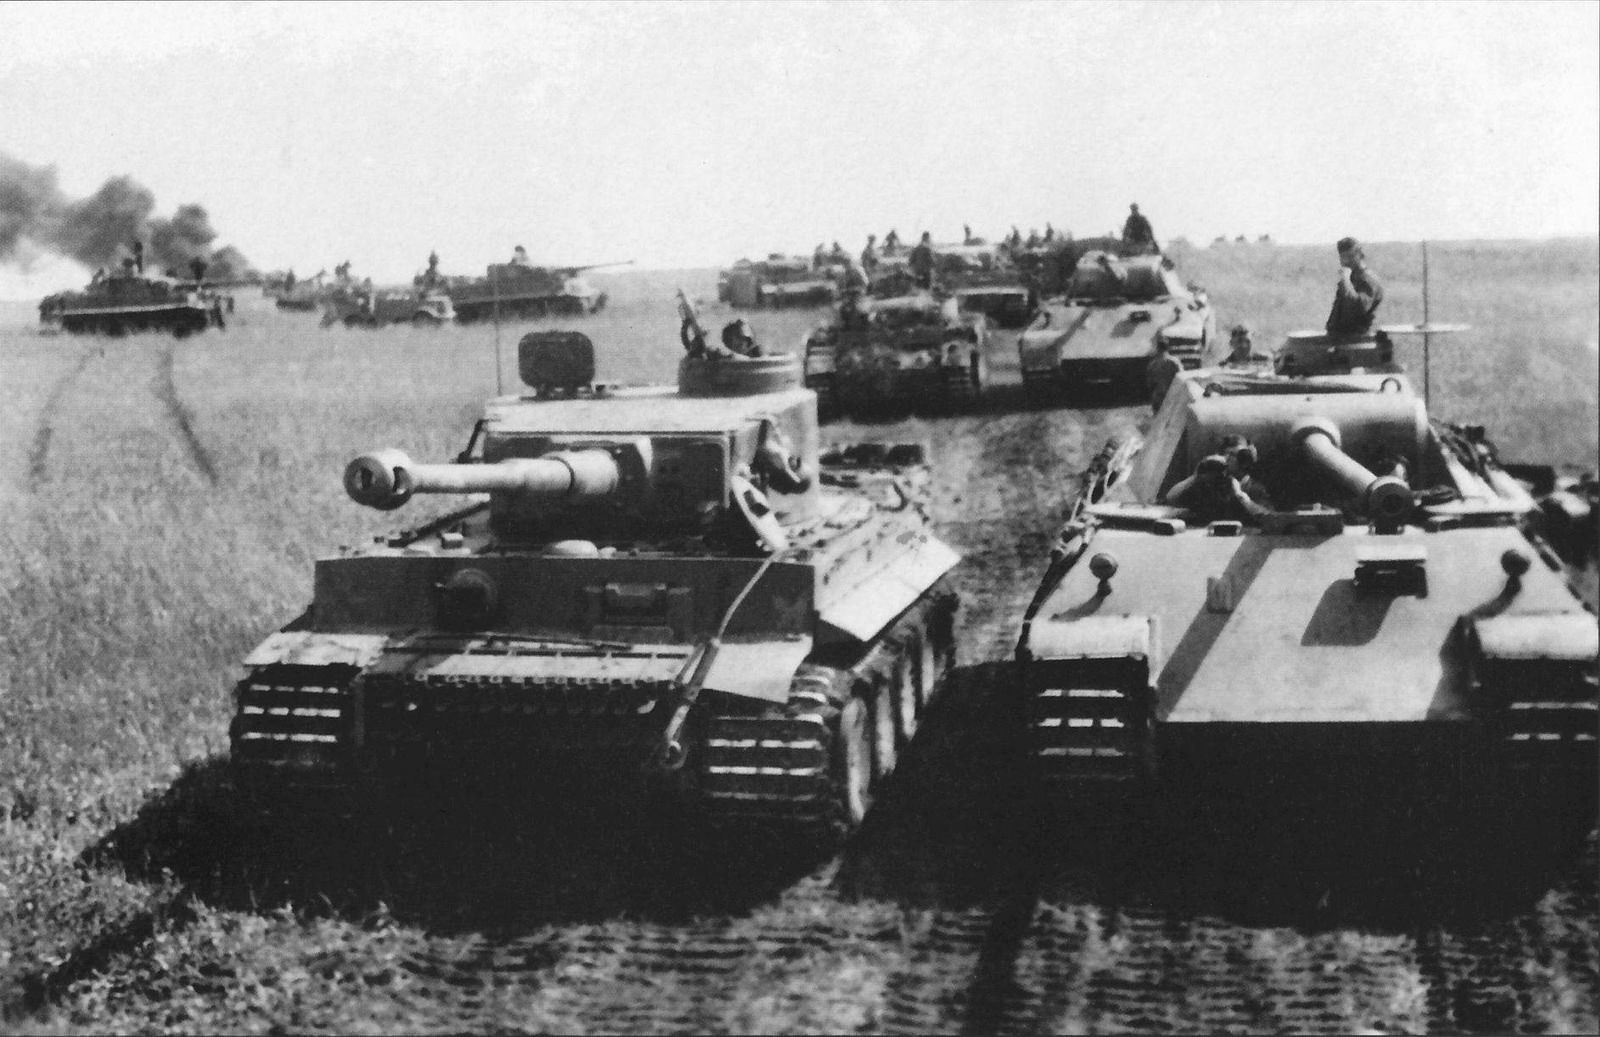 Panthers of Pz. Abt 51 alongside Tigers of the 13.Kp Pz ...